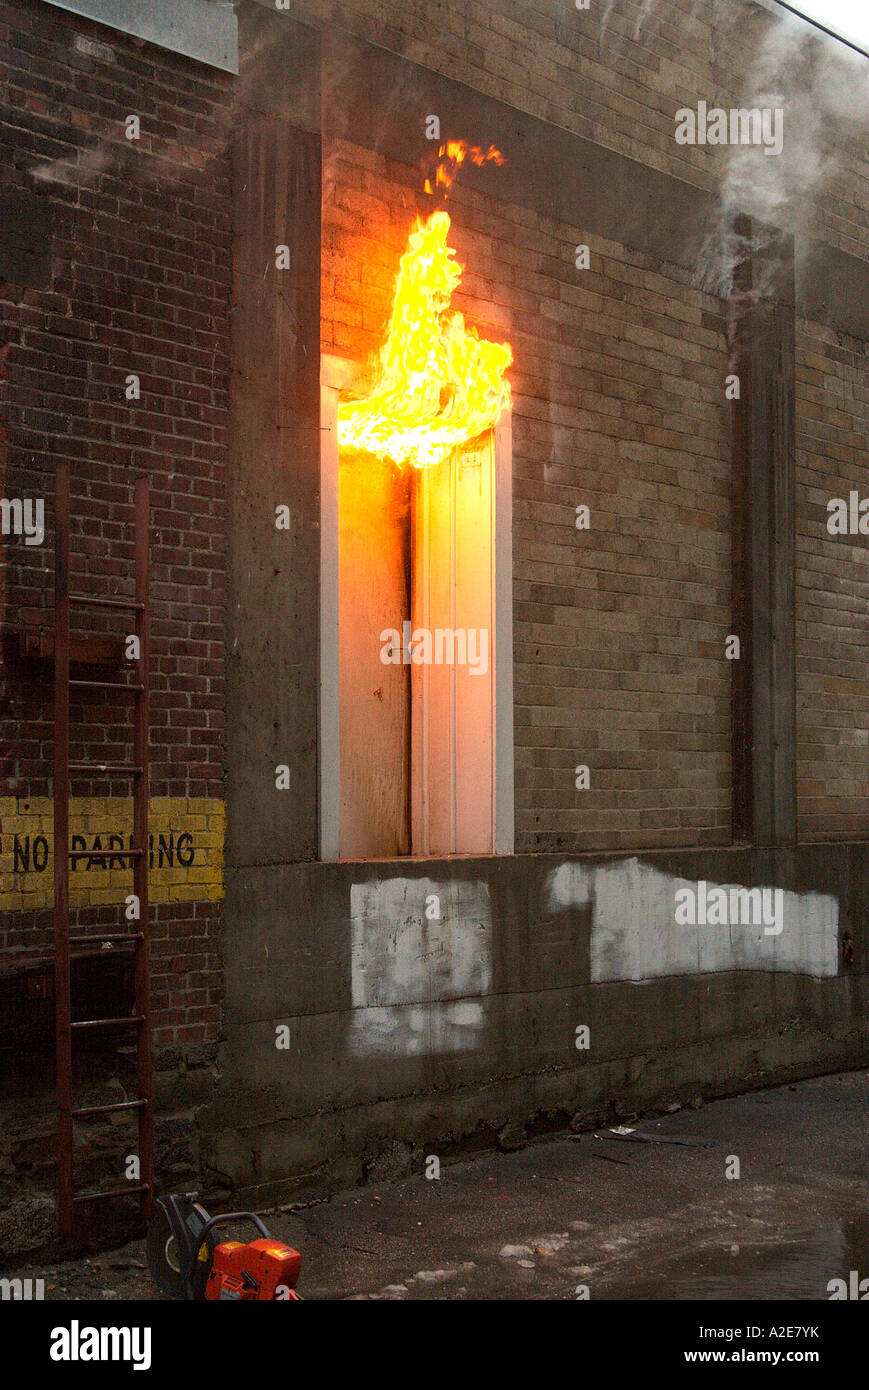 Flames In A Doorway Of A Brick Commercial Warehouse Filled With - Furniture nearby